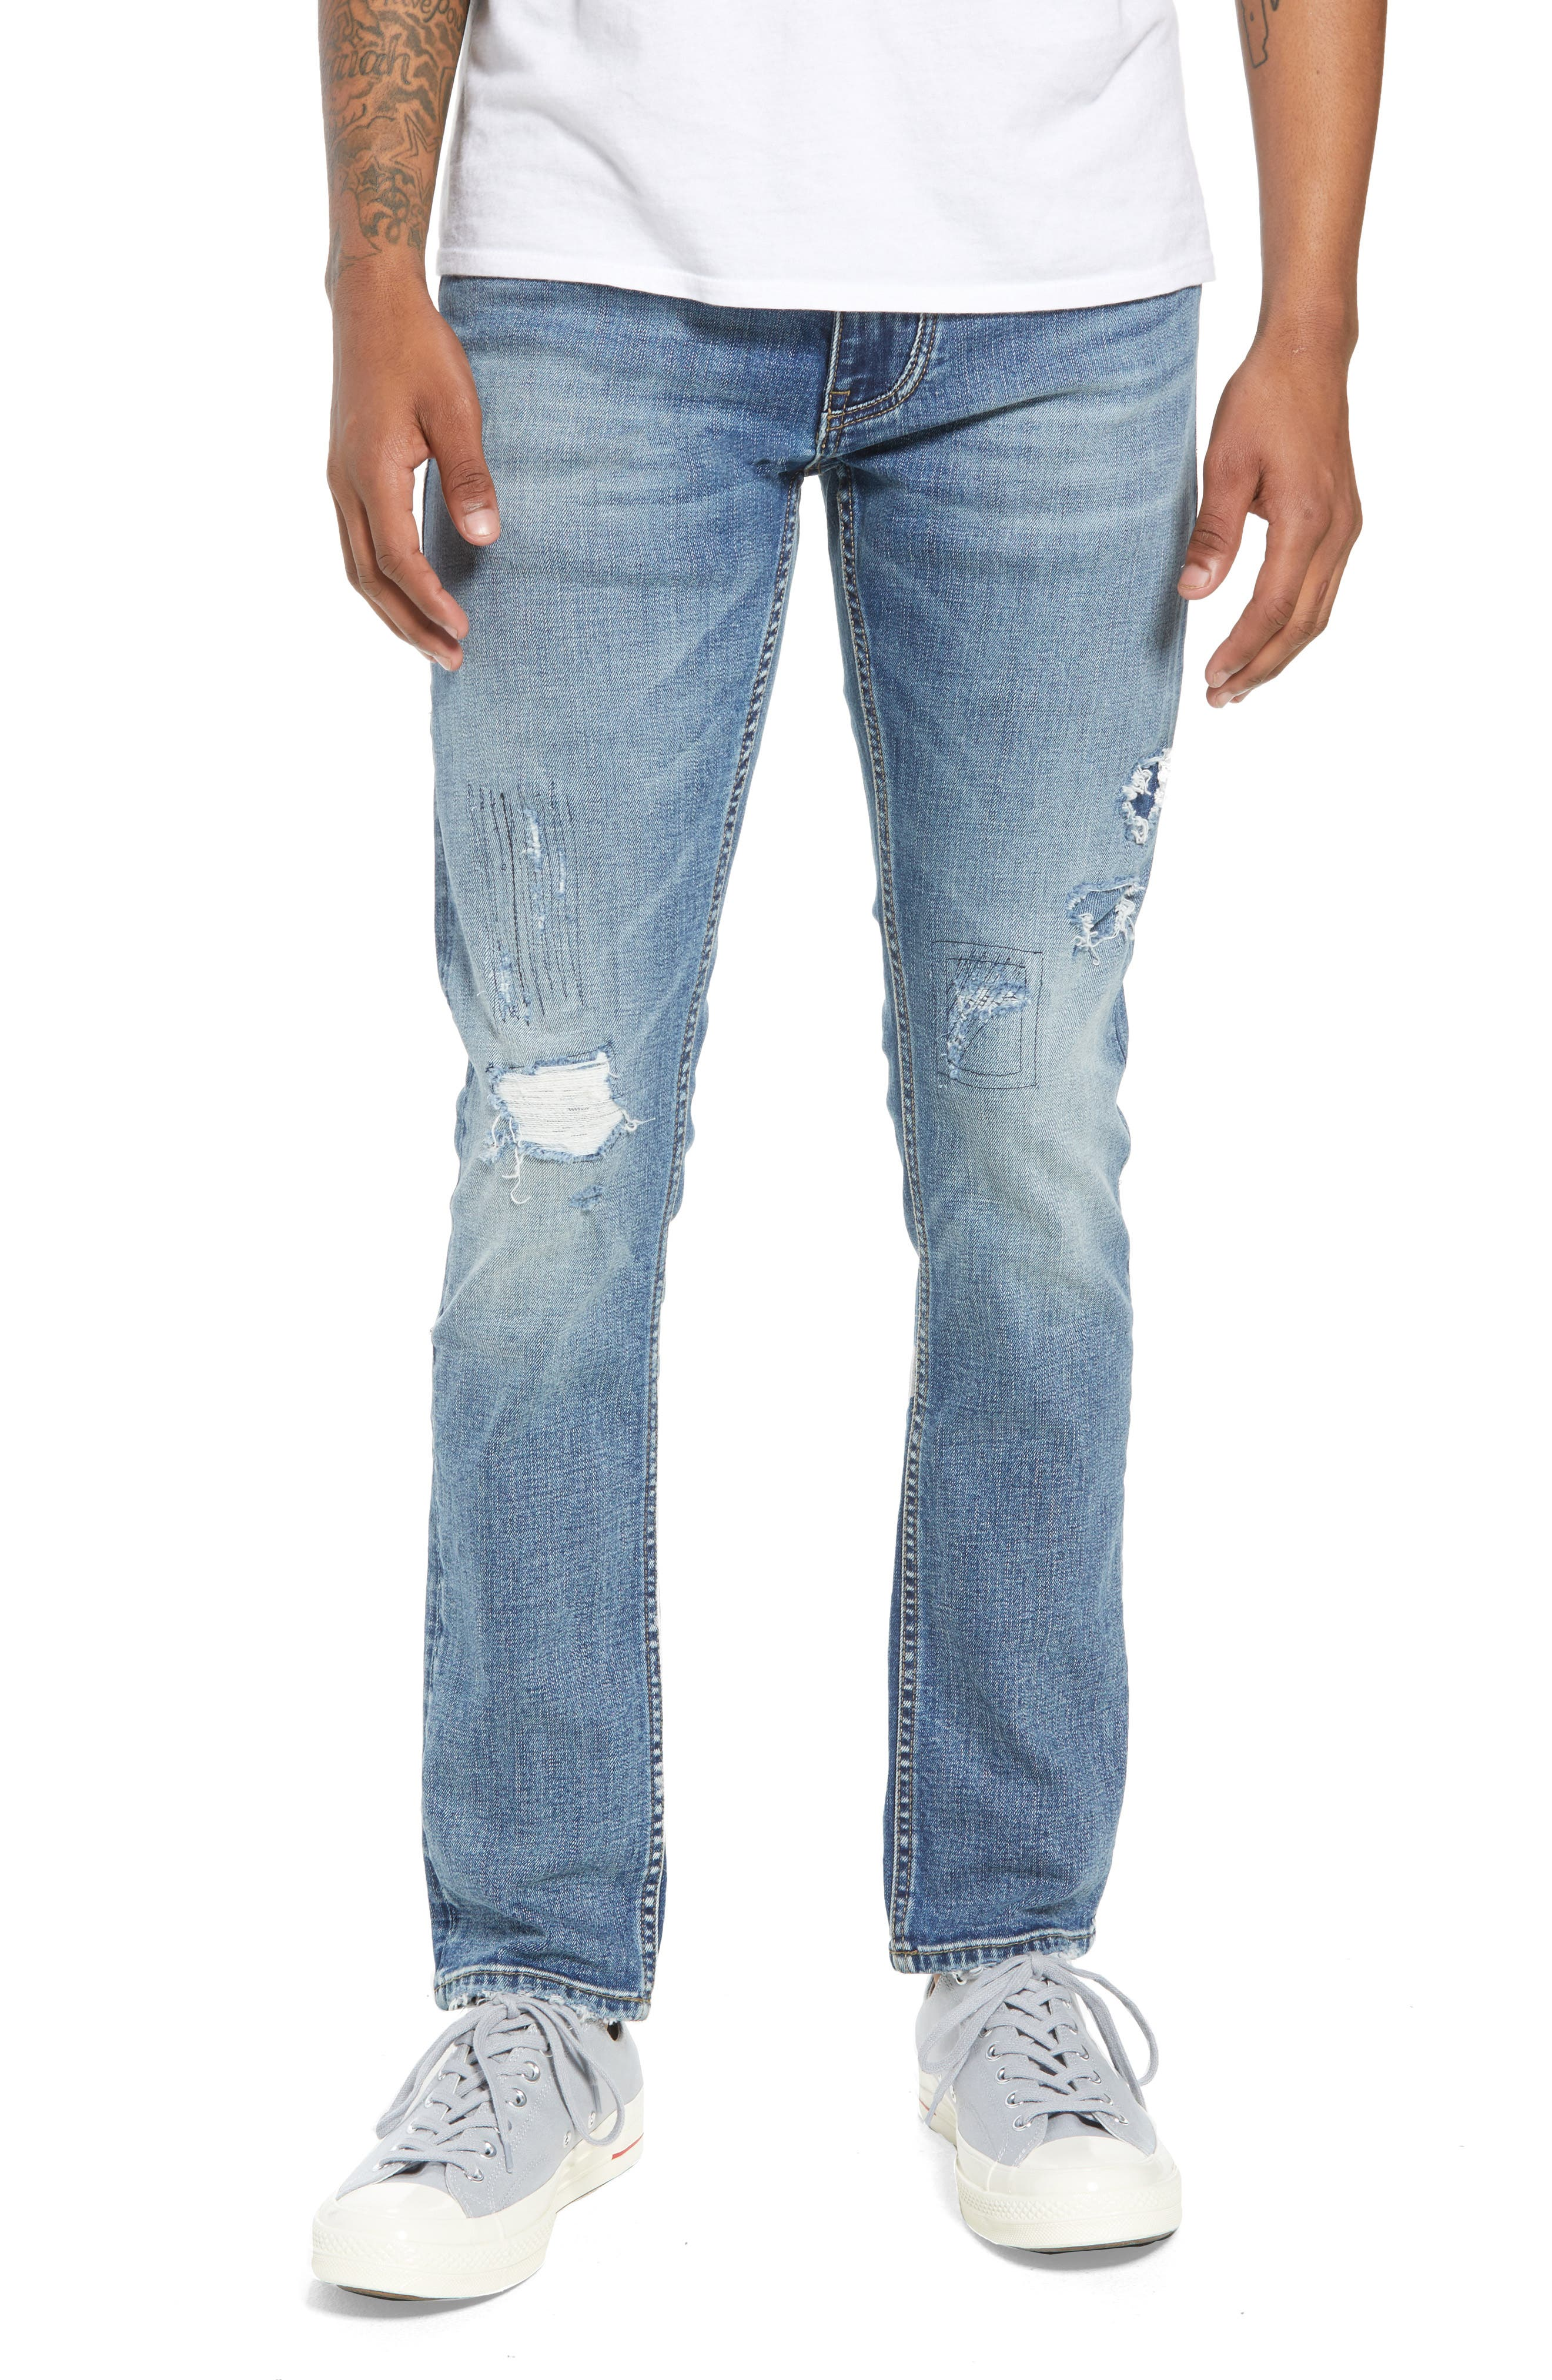 Wooster Slim Fit Jeans,                             Main thumbnail 1, color,                             LION NIGHT